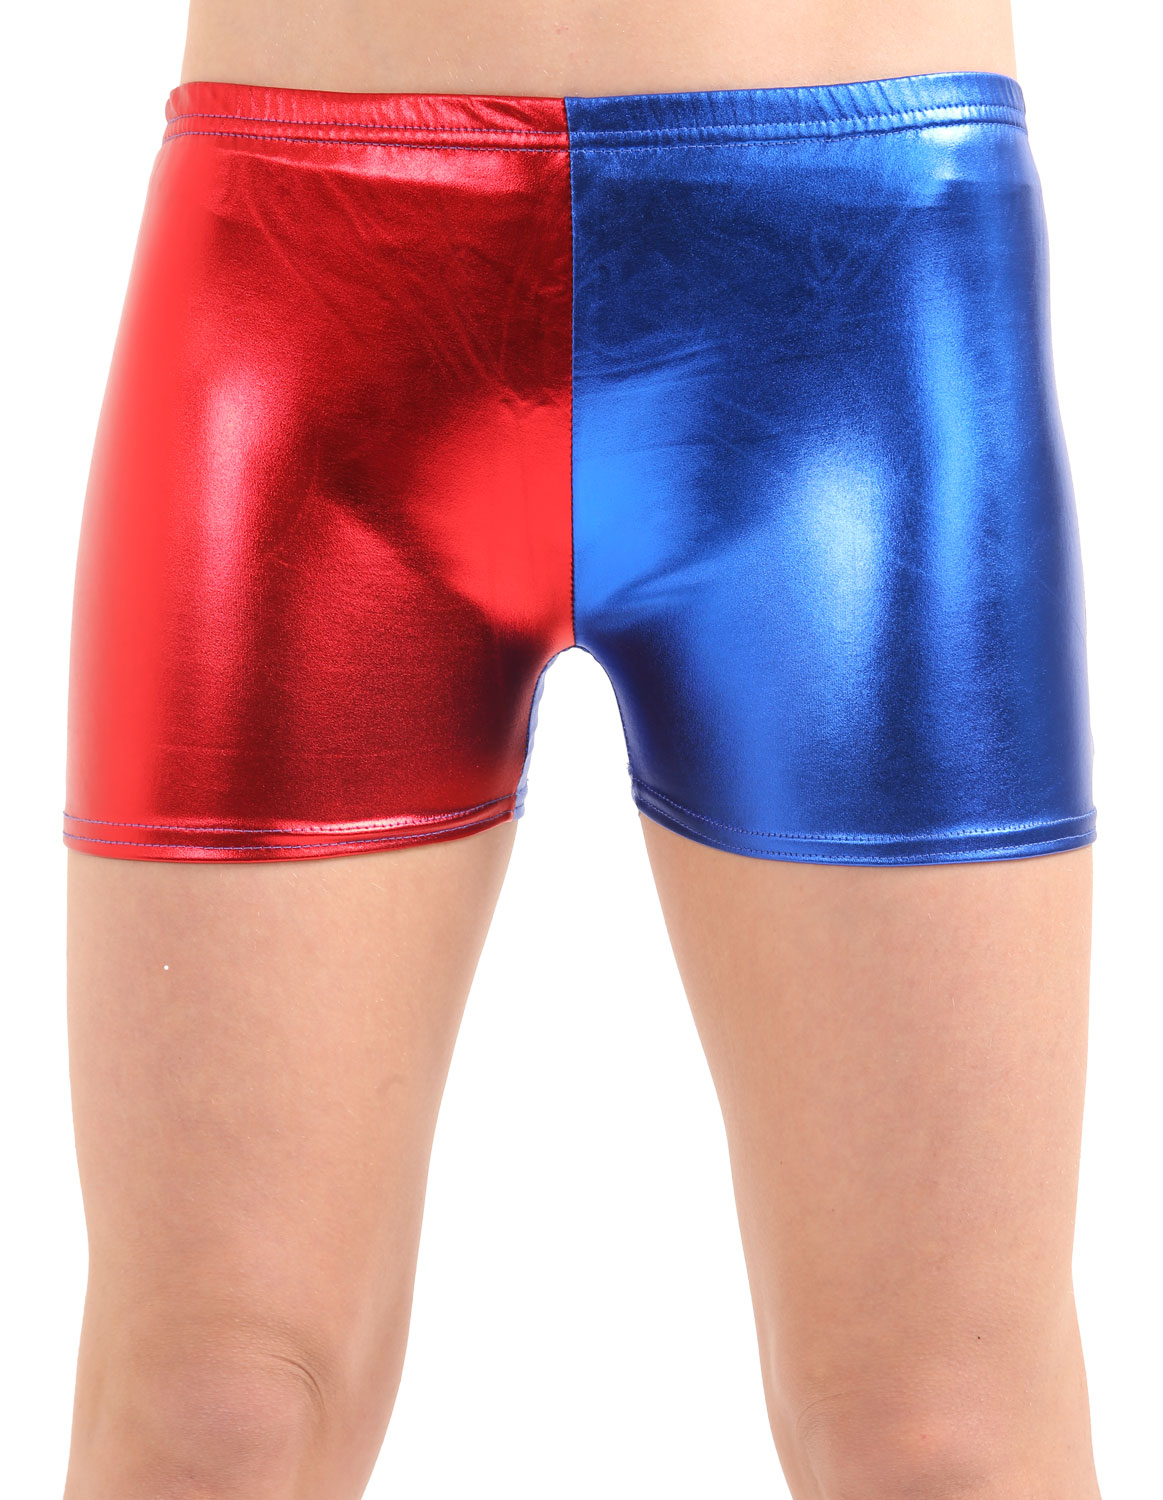 Crazy Chick Girls Shiny Metallic Red Blue Hot Pants